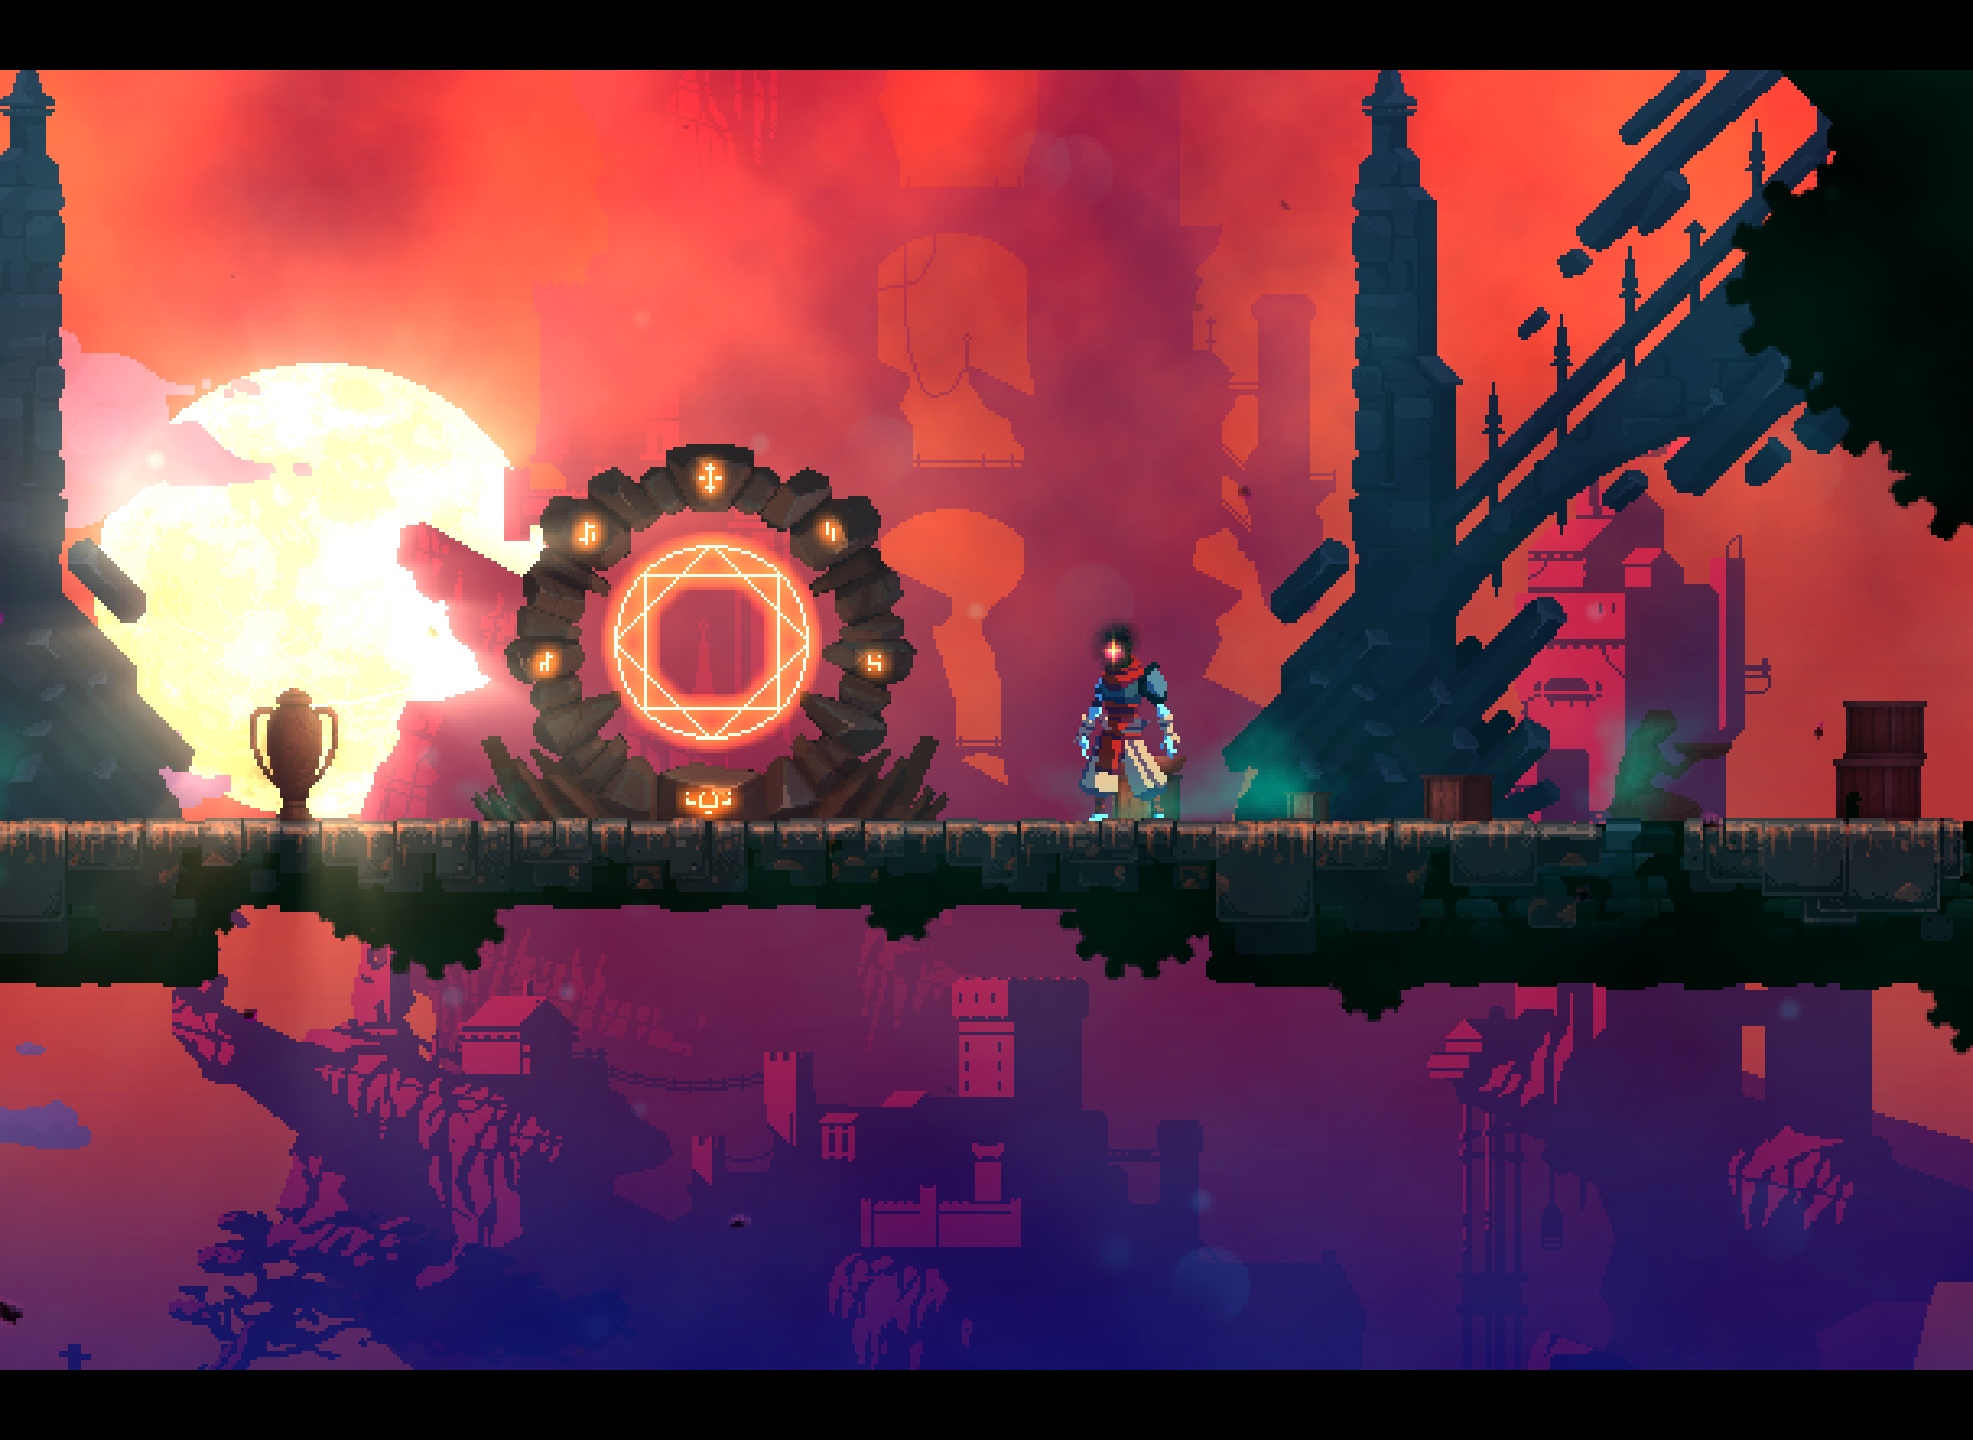 Dead Cells draws inspiration from Metroidvania hits with rogue-like flair. This style is what drew Henpaku in.